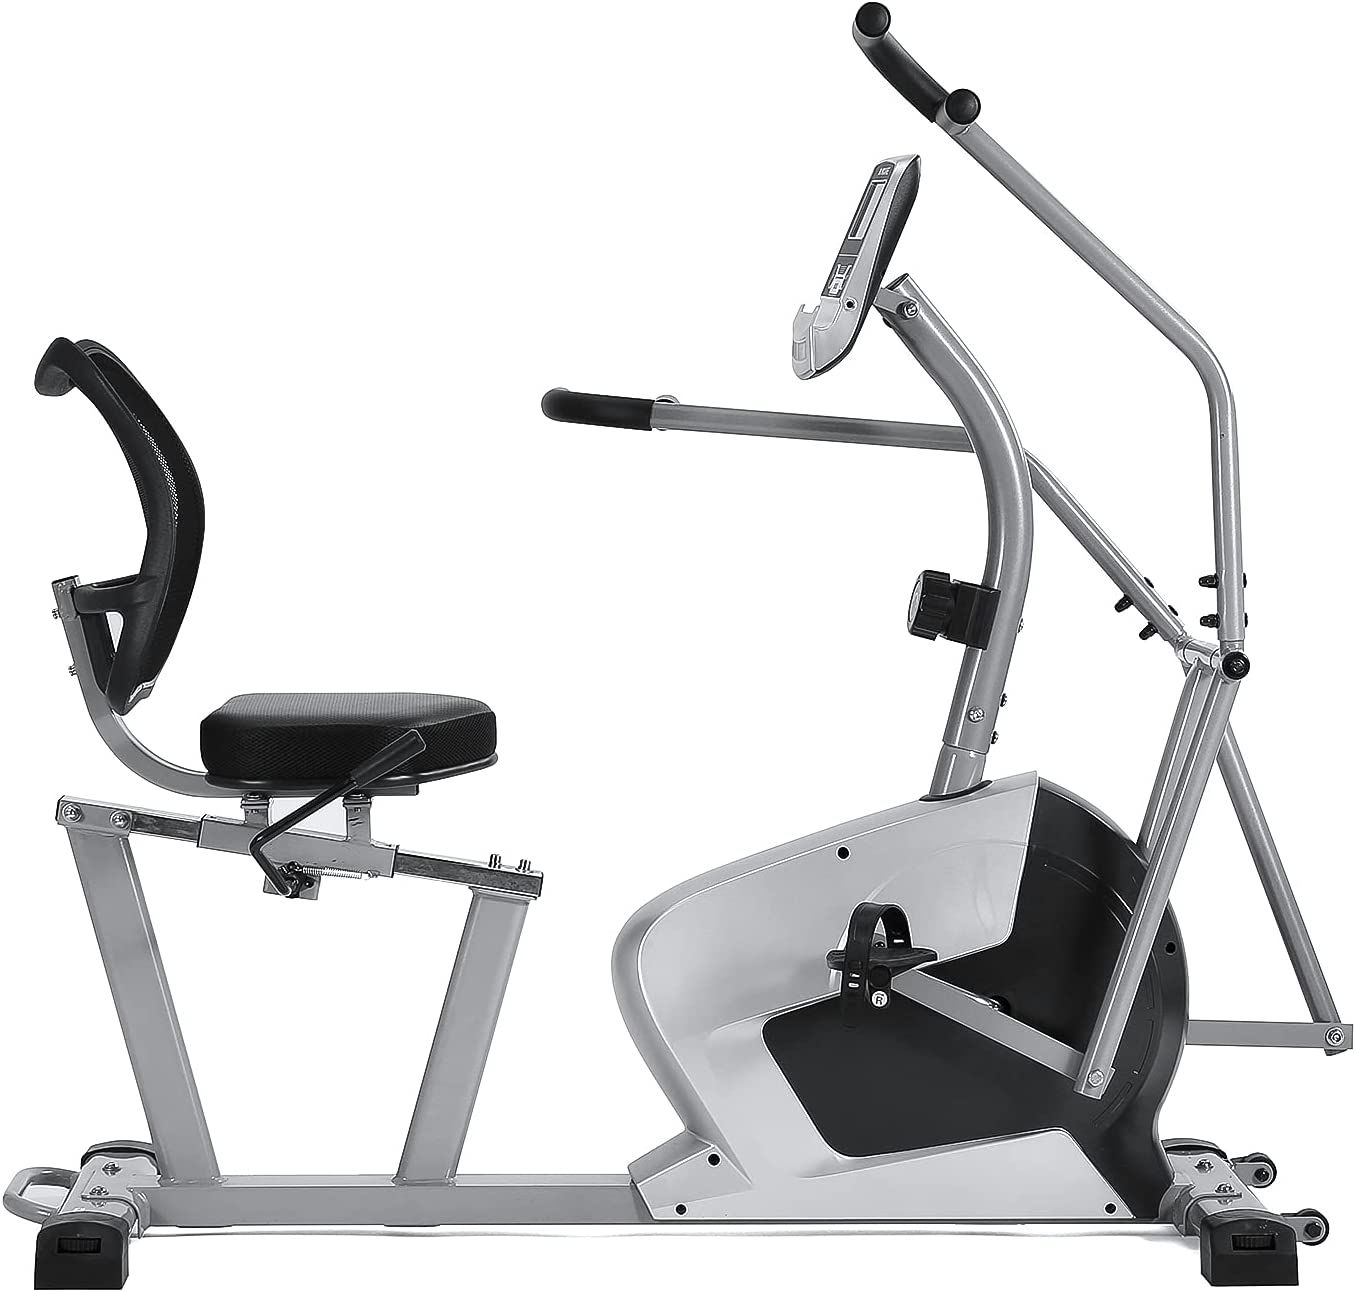 Recumbent Max 59% OFF Exercise Bike with Arm Ca Exerciser High Weight Ranking TOP10 350lb